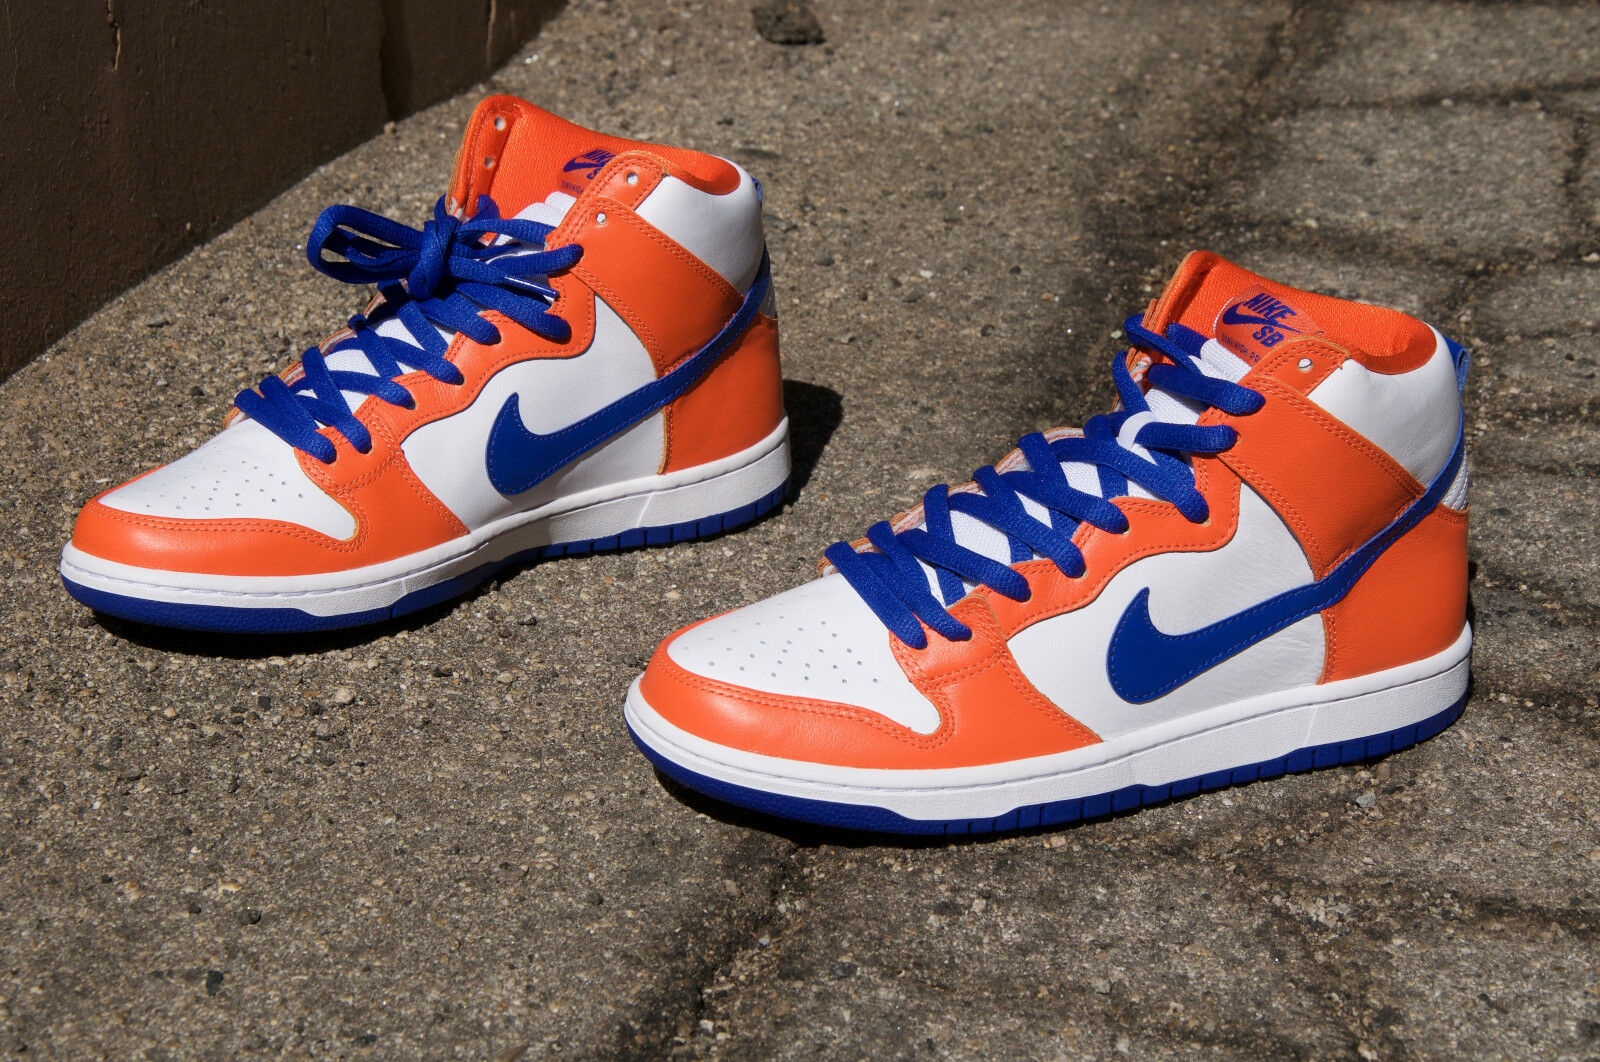 NEW NIKE SB DUNK HIGH TRD QS DANNY SUPA SAFETY ORANGE-BLUE Size 10